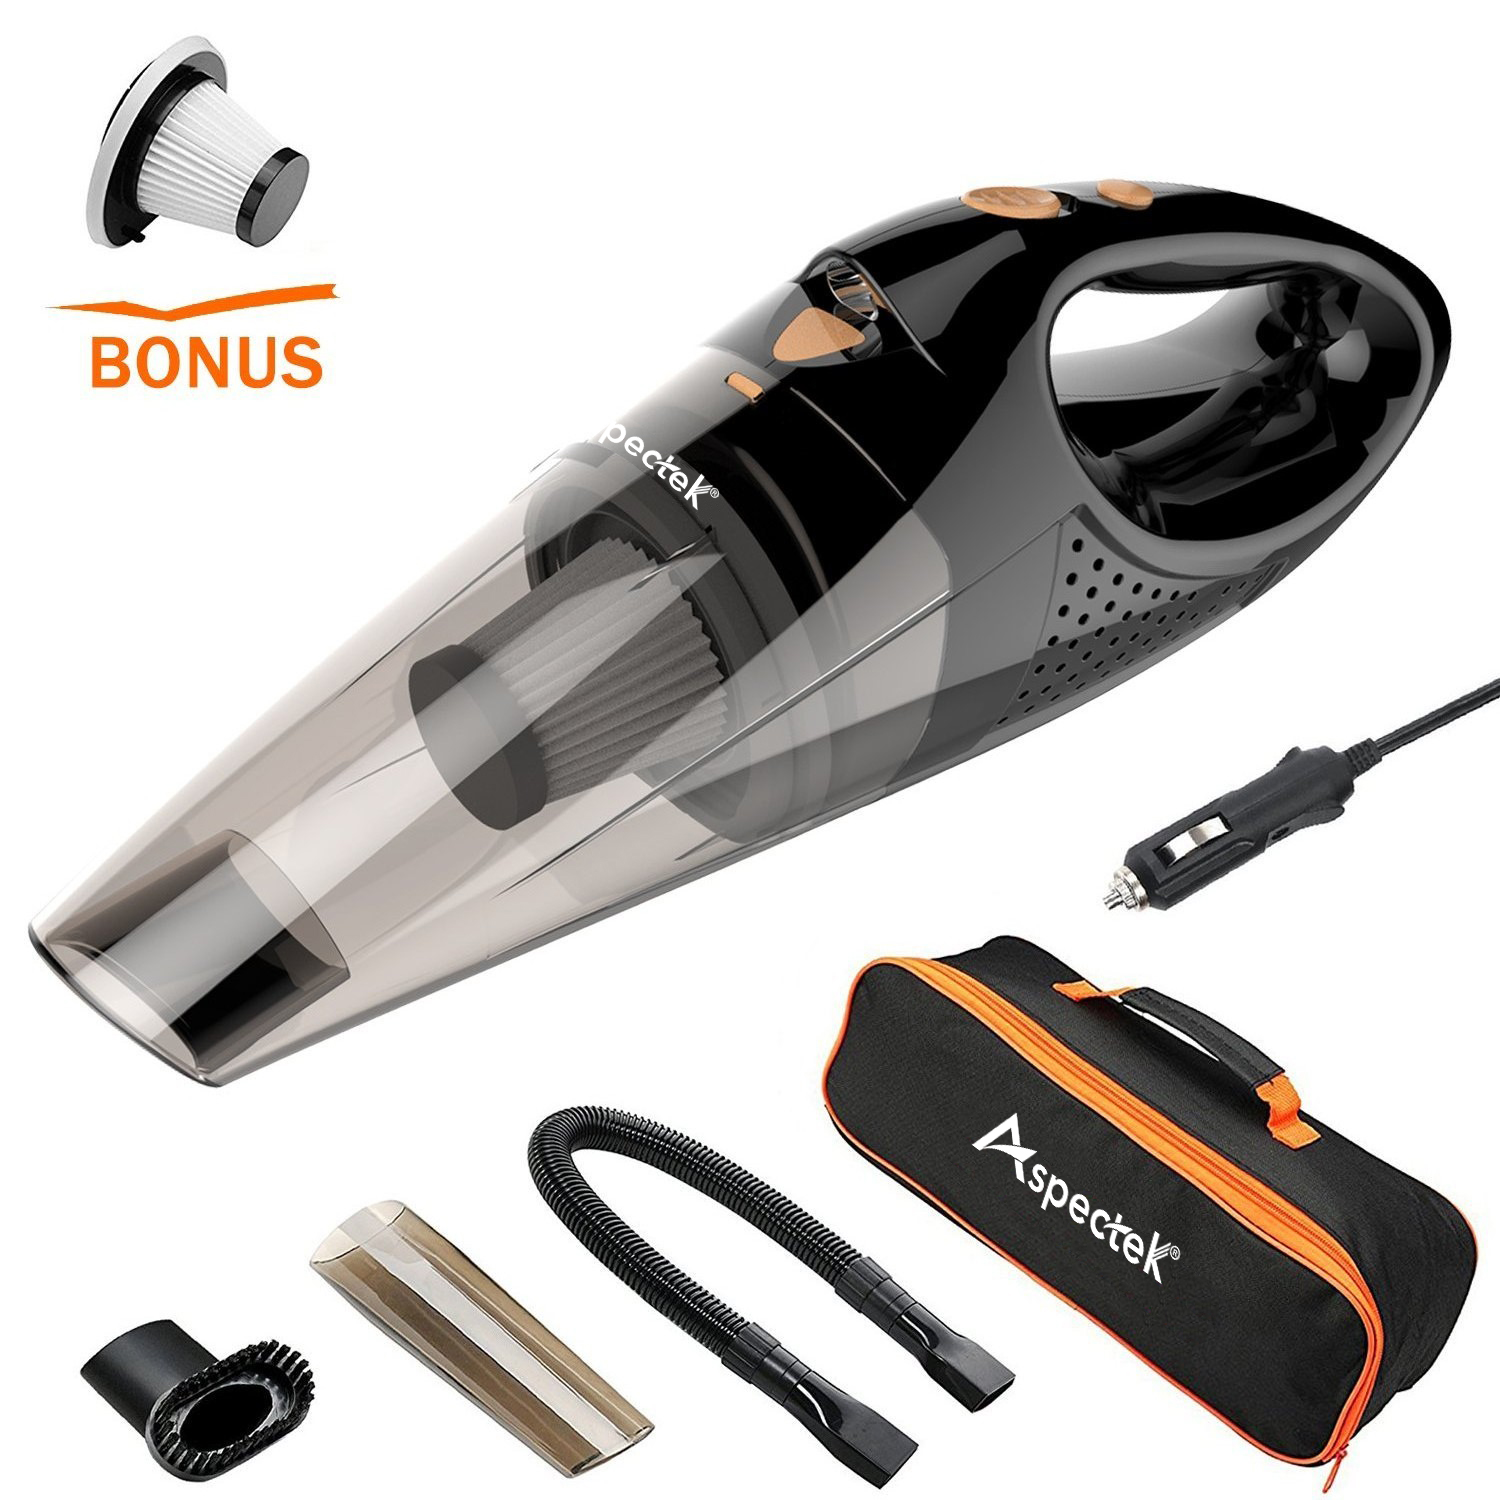 [Upgraded] Car Vacuum Cleaner with LED Light, Aspectek DC12-Volt Wet/Dry Portable Handheld Auto Vacuum Cleaner for Car,16.4FT(5M)Power Cord with Carry Bag(Black)